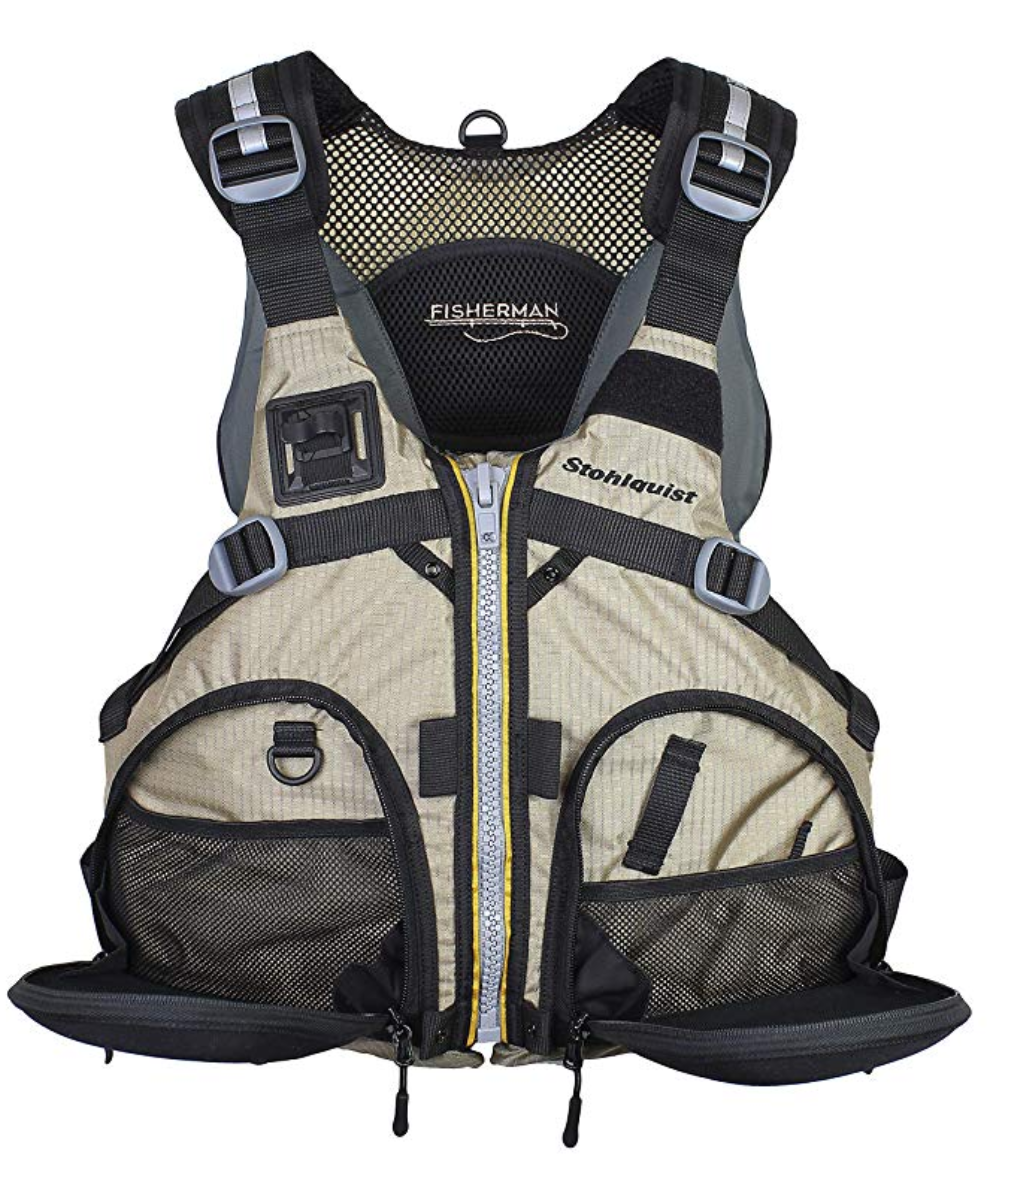 The Stohlquist Fisherman is our pick for best life jacket for fishing.